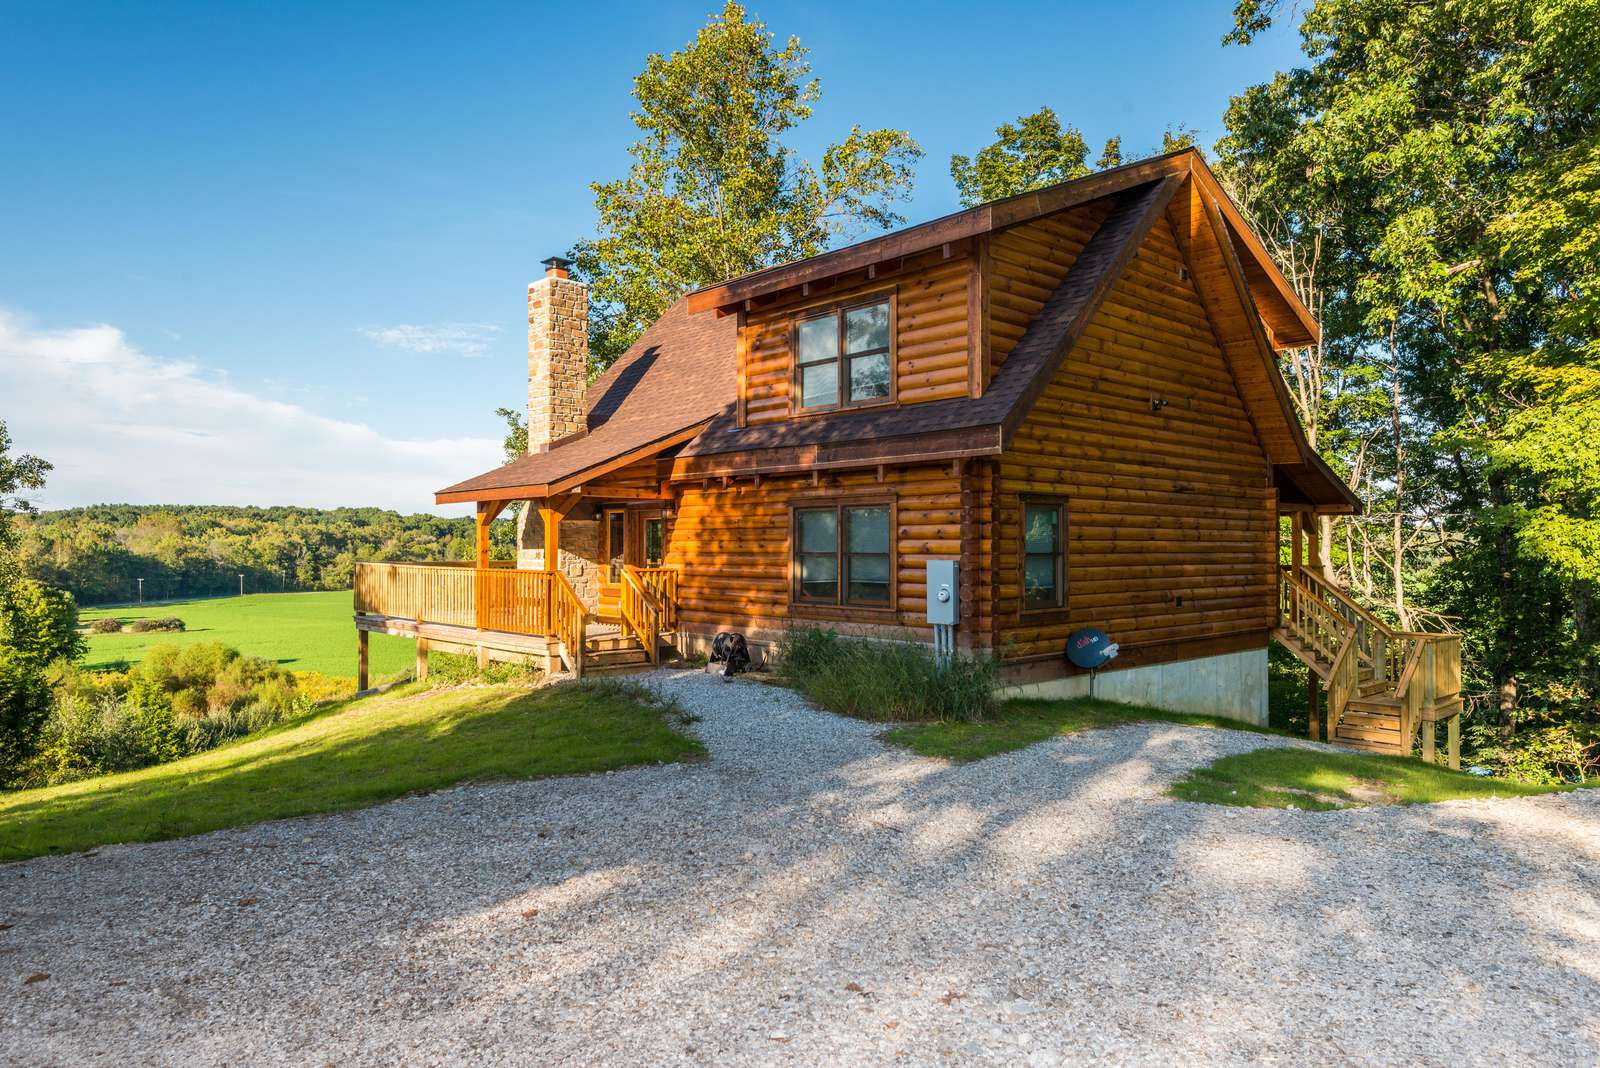 The Orchard Log Cabin - property